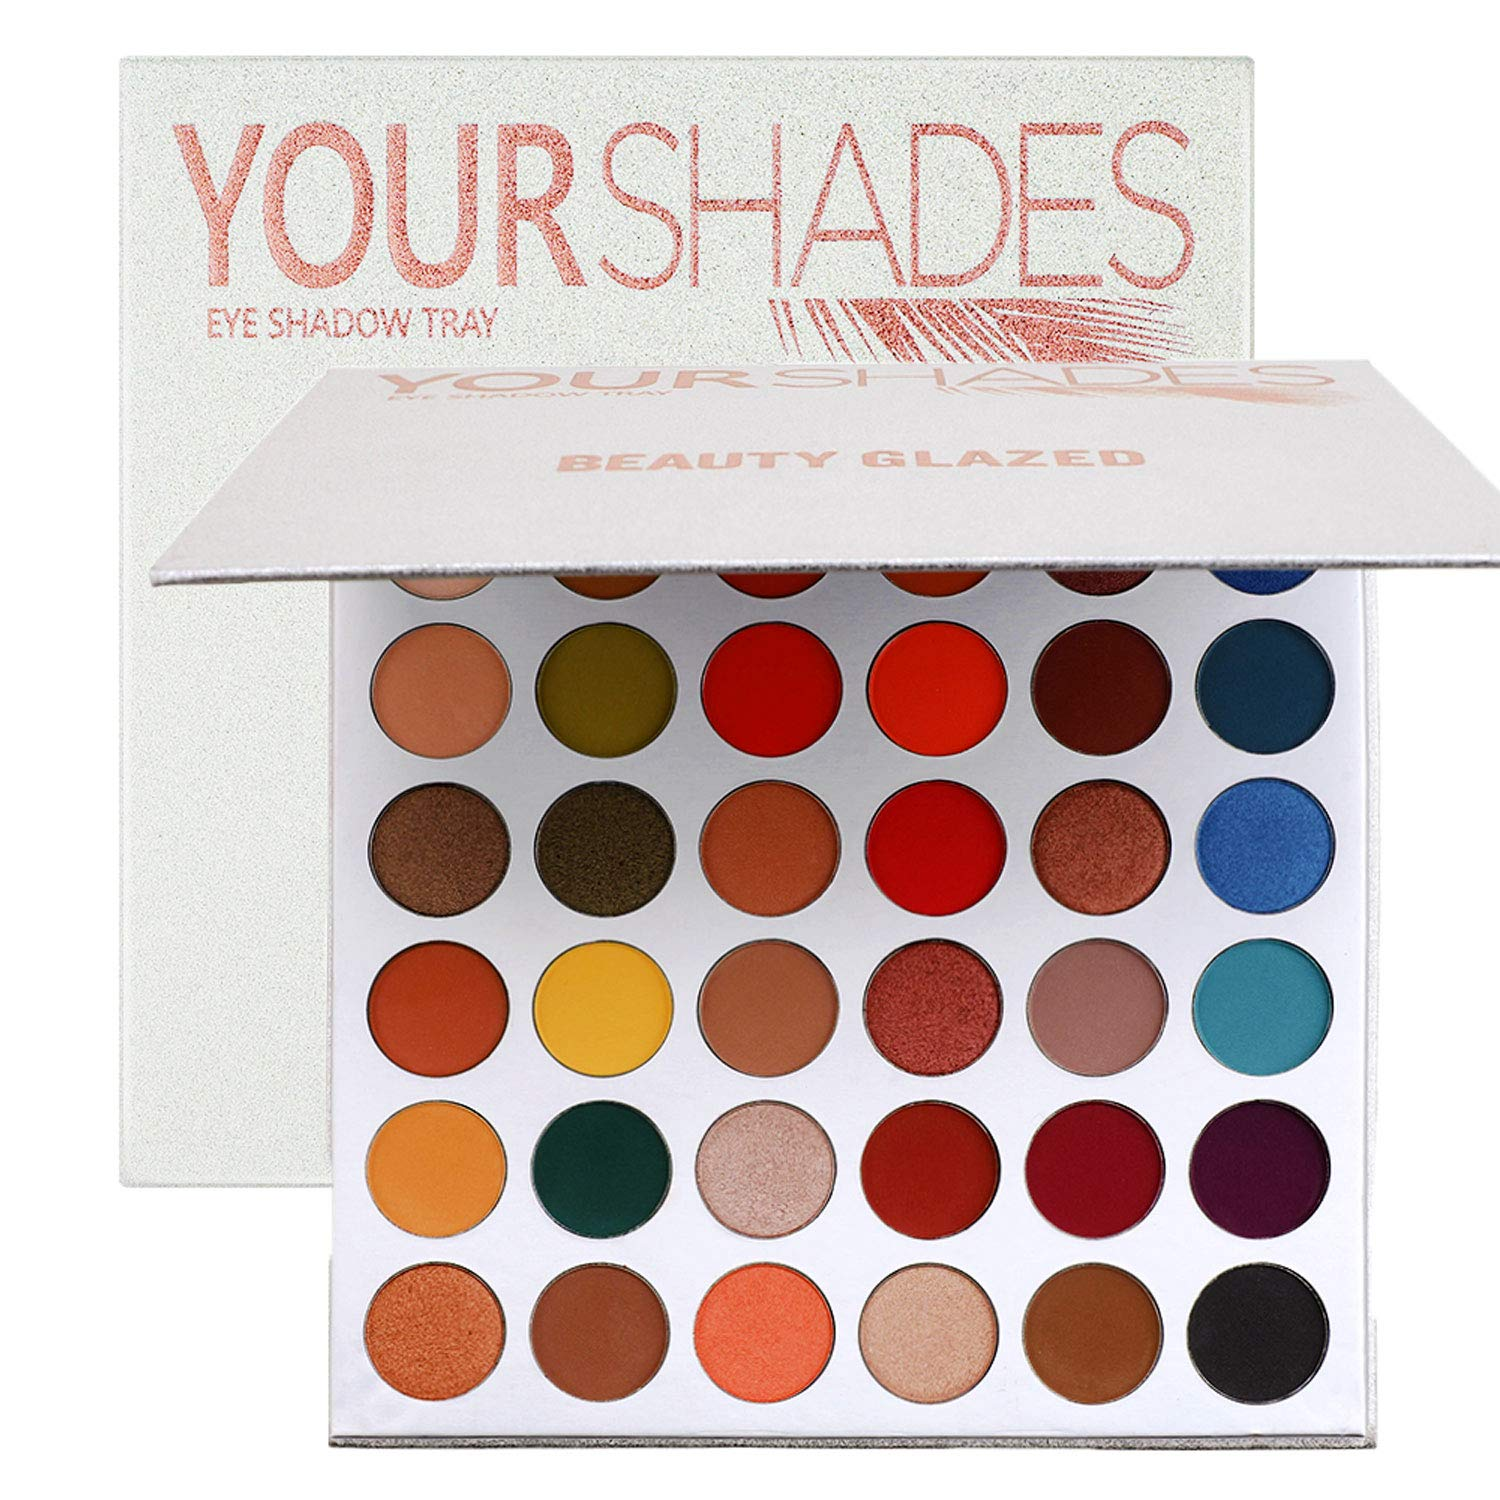 Beauty Glazed 36 Colors Eyeshadow Palette - Professional Glitter Shimmer Matte Red Eyeshadows Cosmetics - Highly Pigmented Nudes Smoky Eye Shadow Powder Makeup